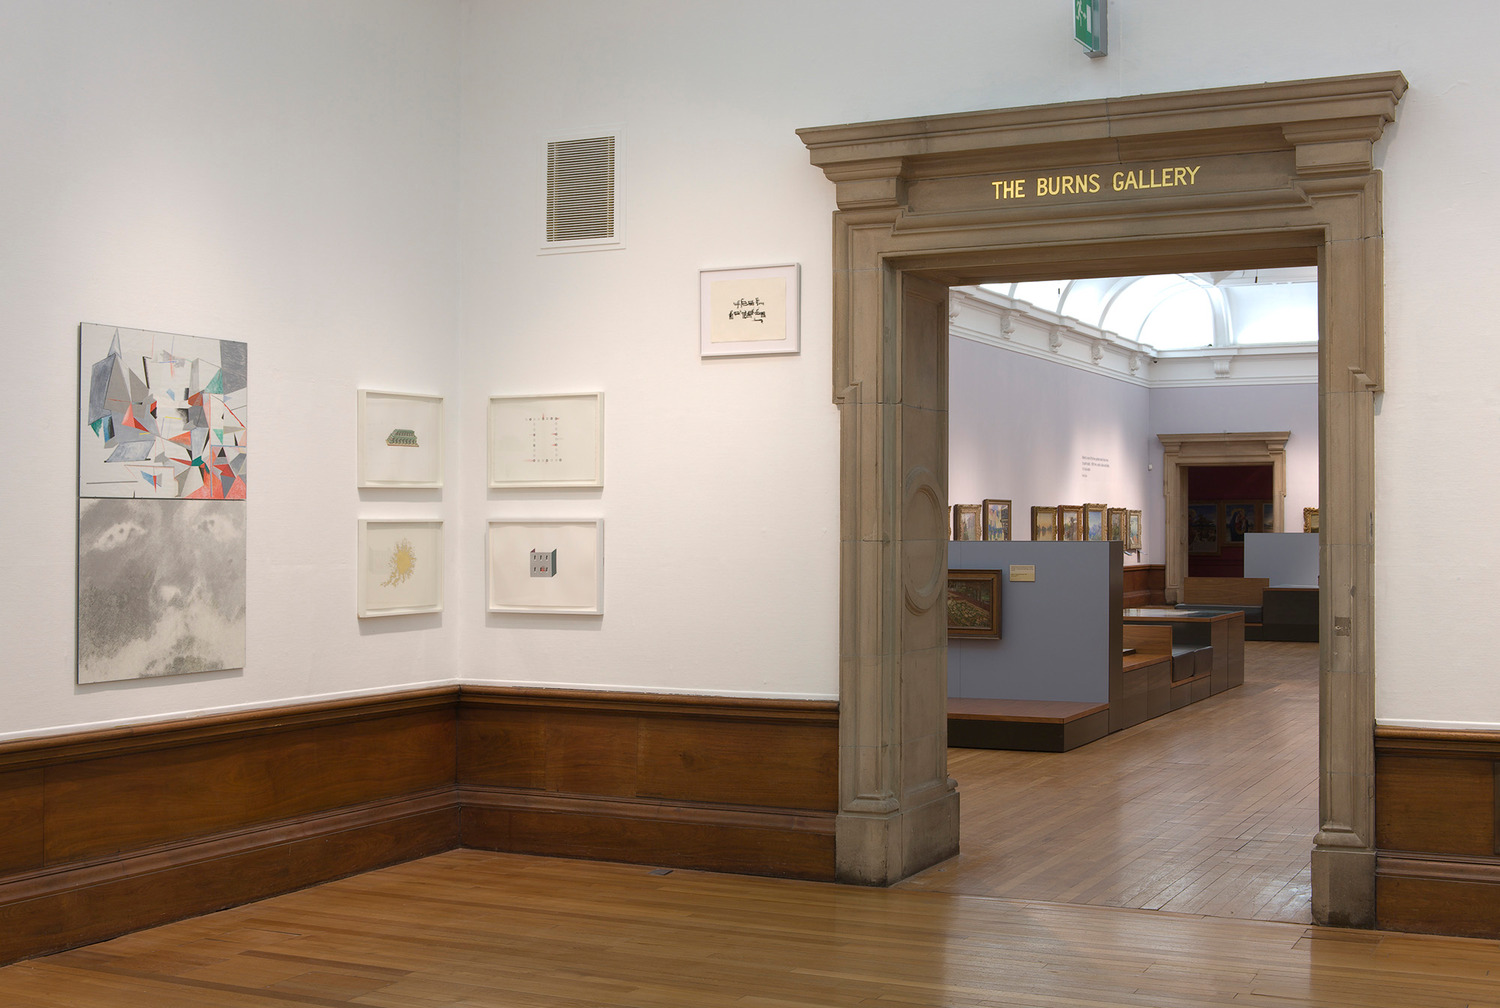 Installation view 'Works on Paper', Kelvingrove Art Gallery and Museum, Glasgow, 2012